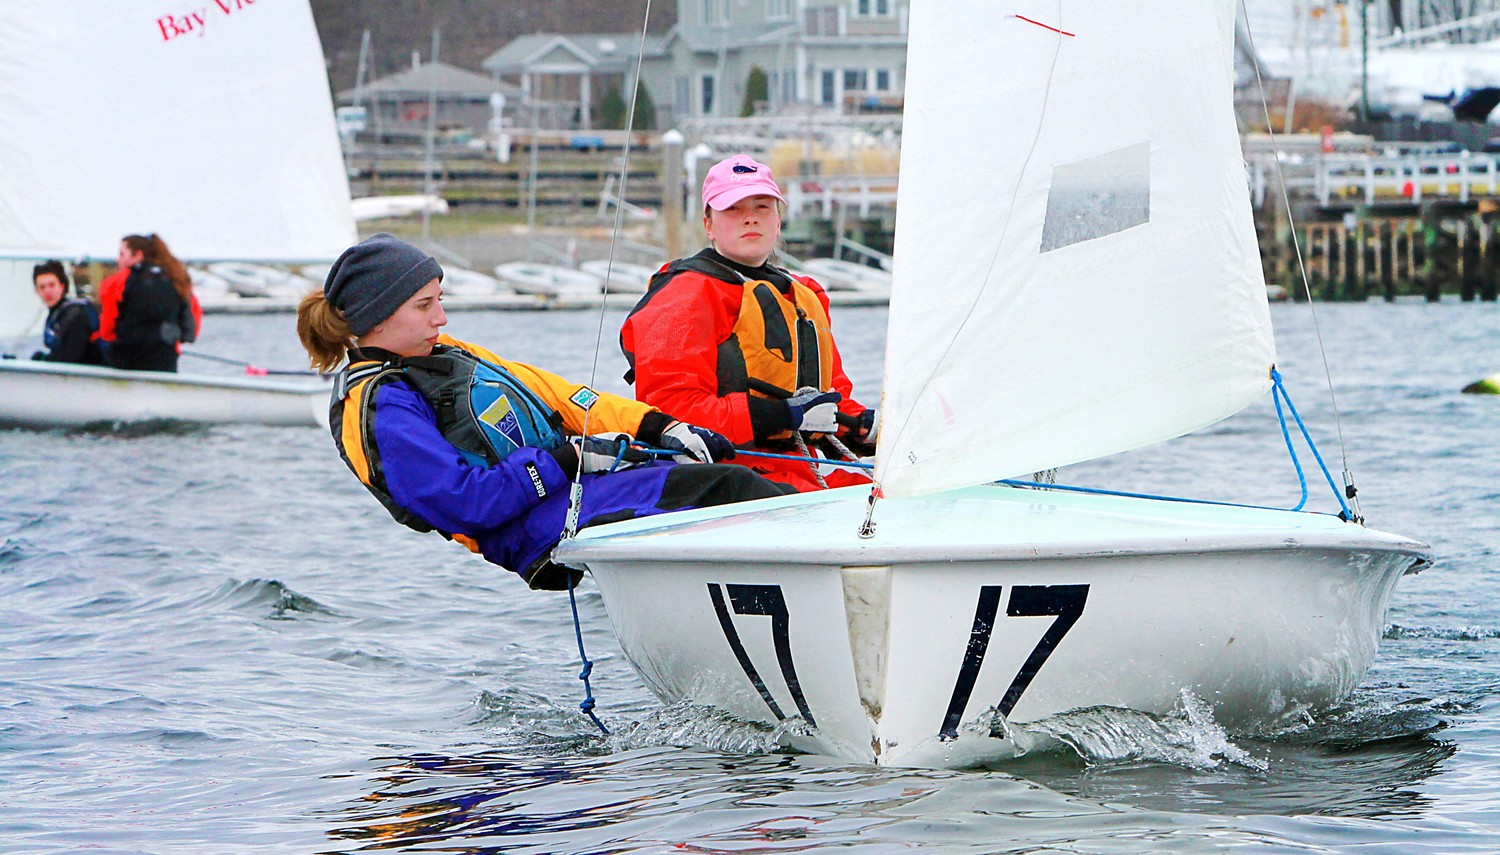 Kari Perez (front) hiking her boat, during a recent sailing practice as the team get ready for spring competition